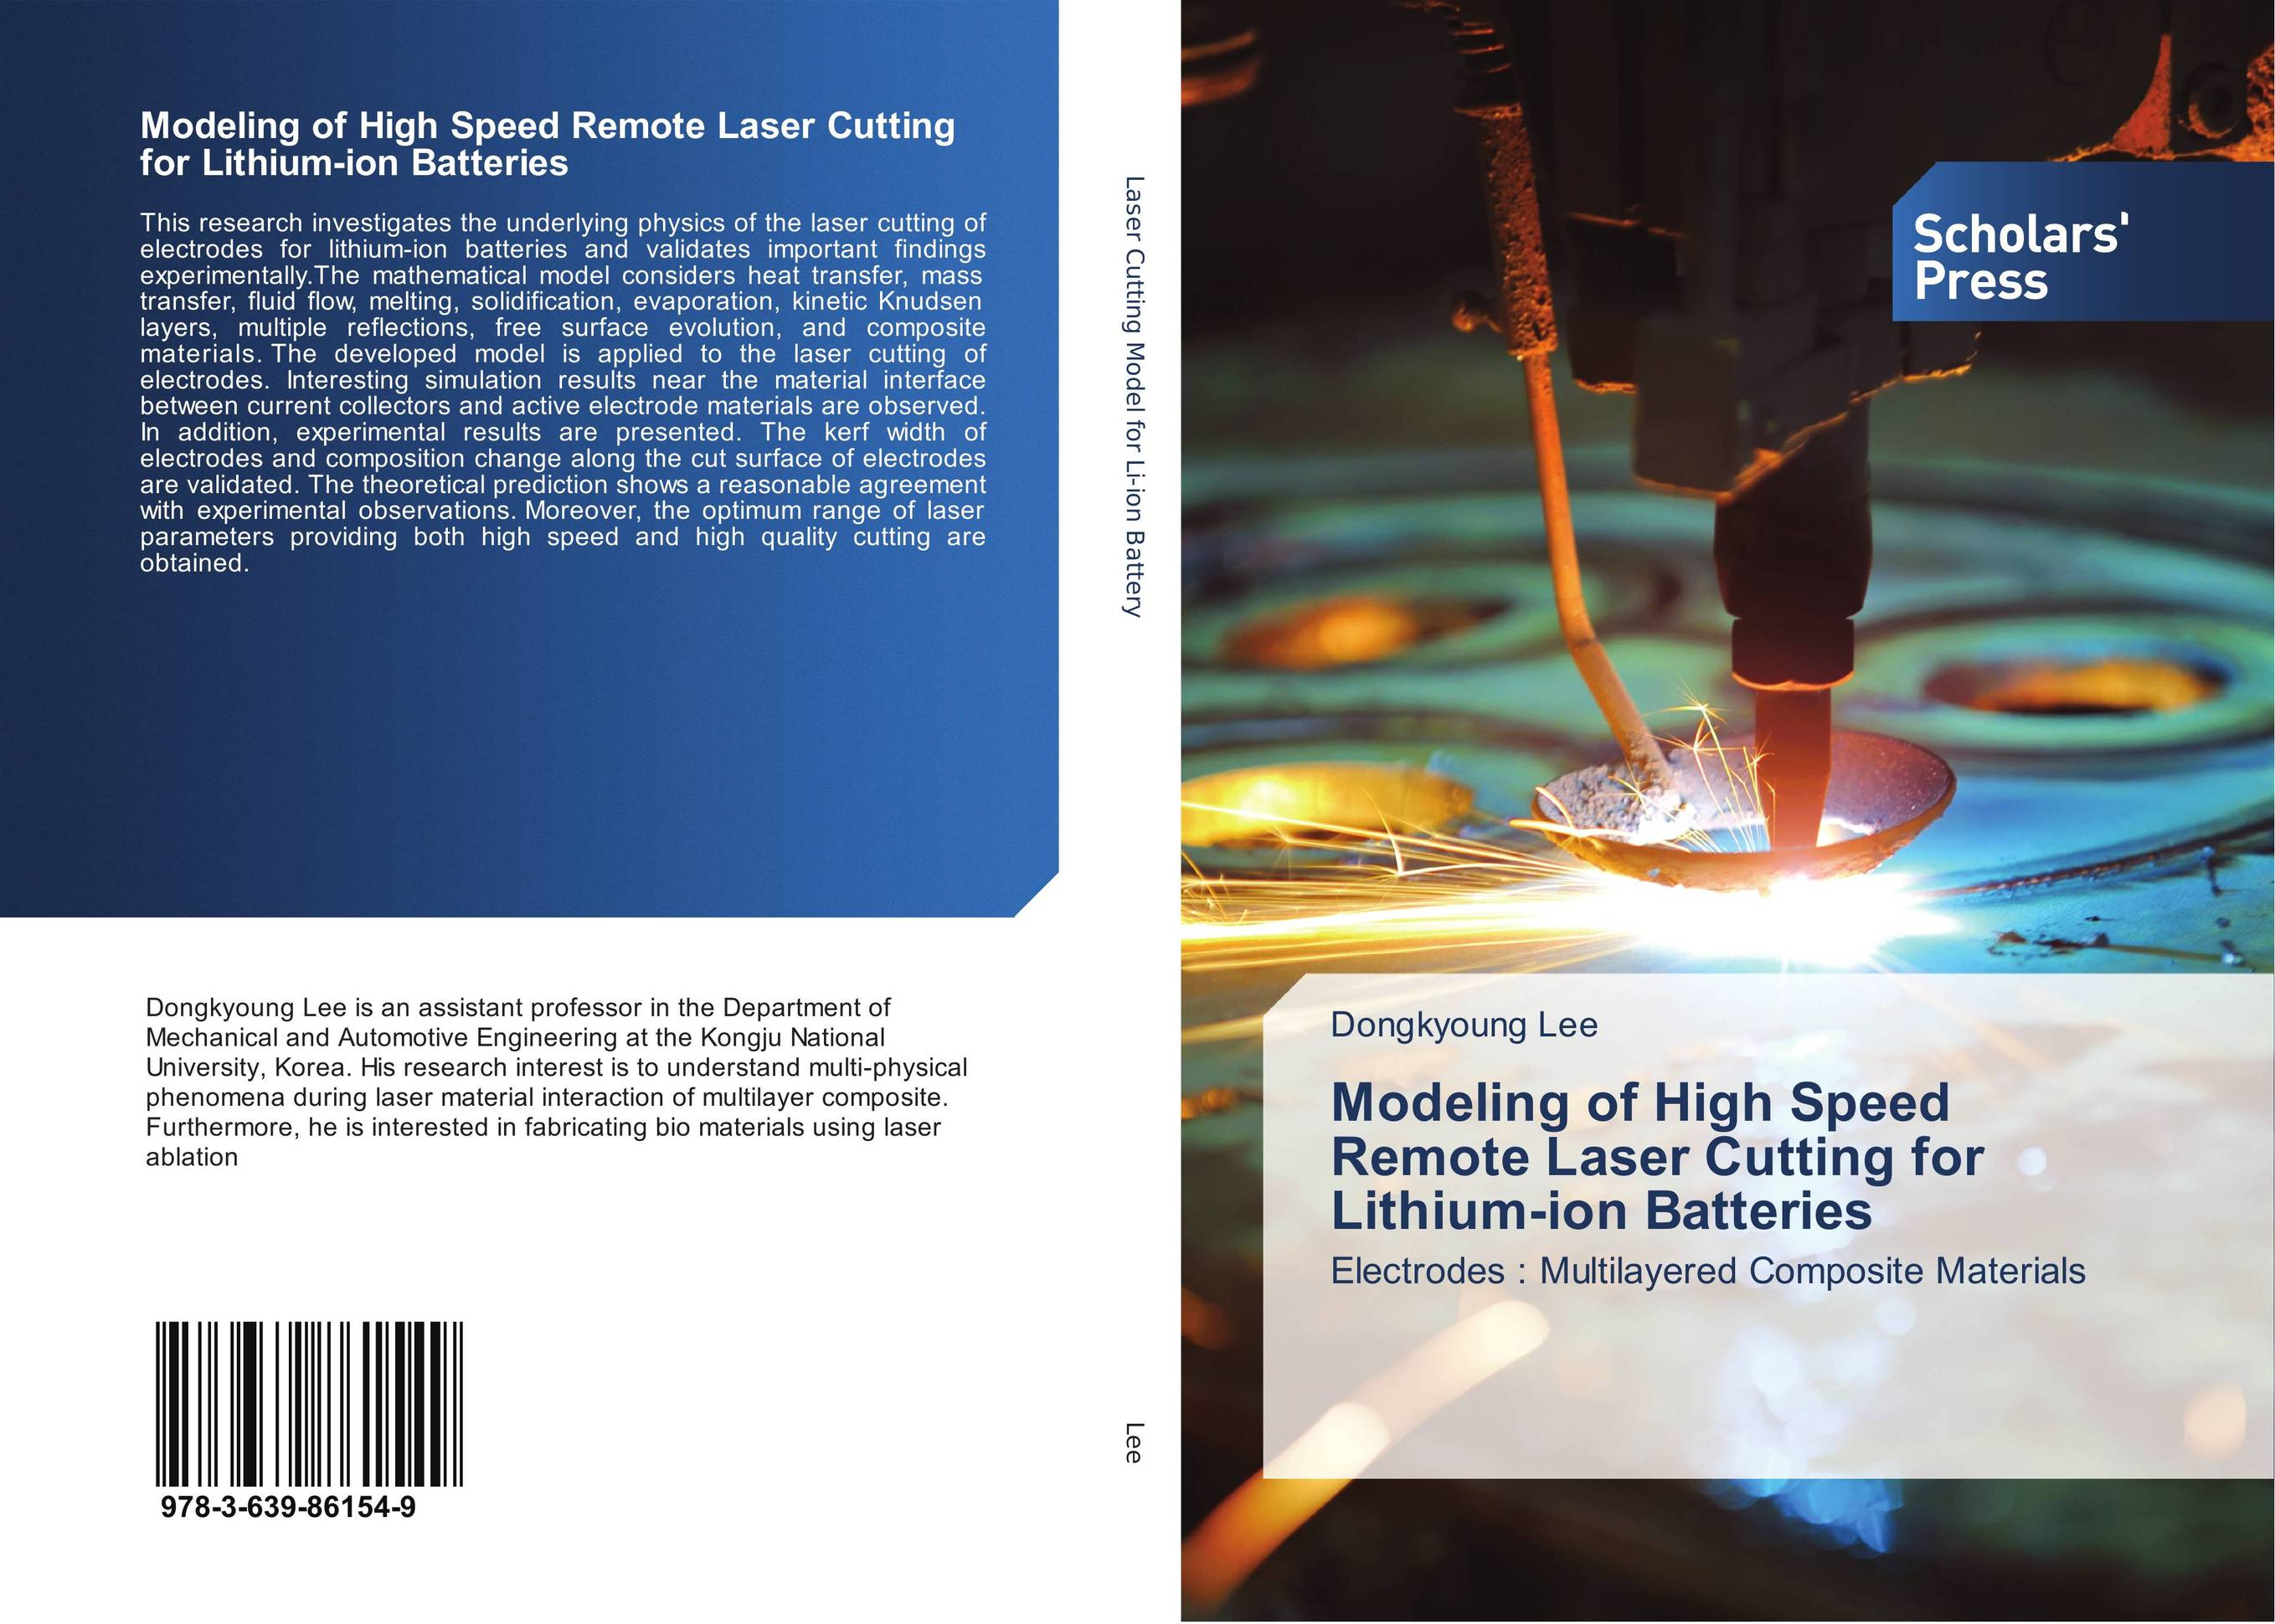 Modeling of High Speed Remote Laser Cutting for Lithium-ion Batteries